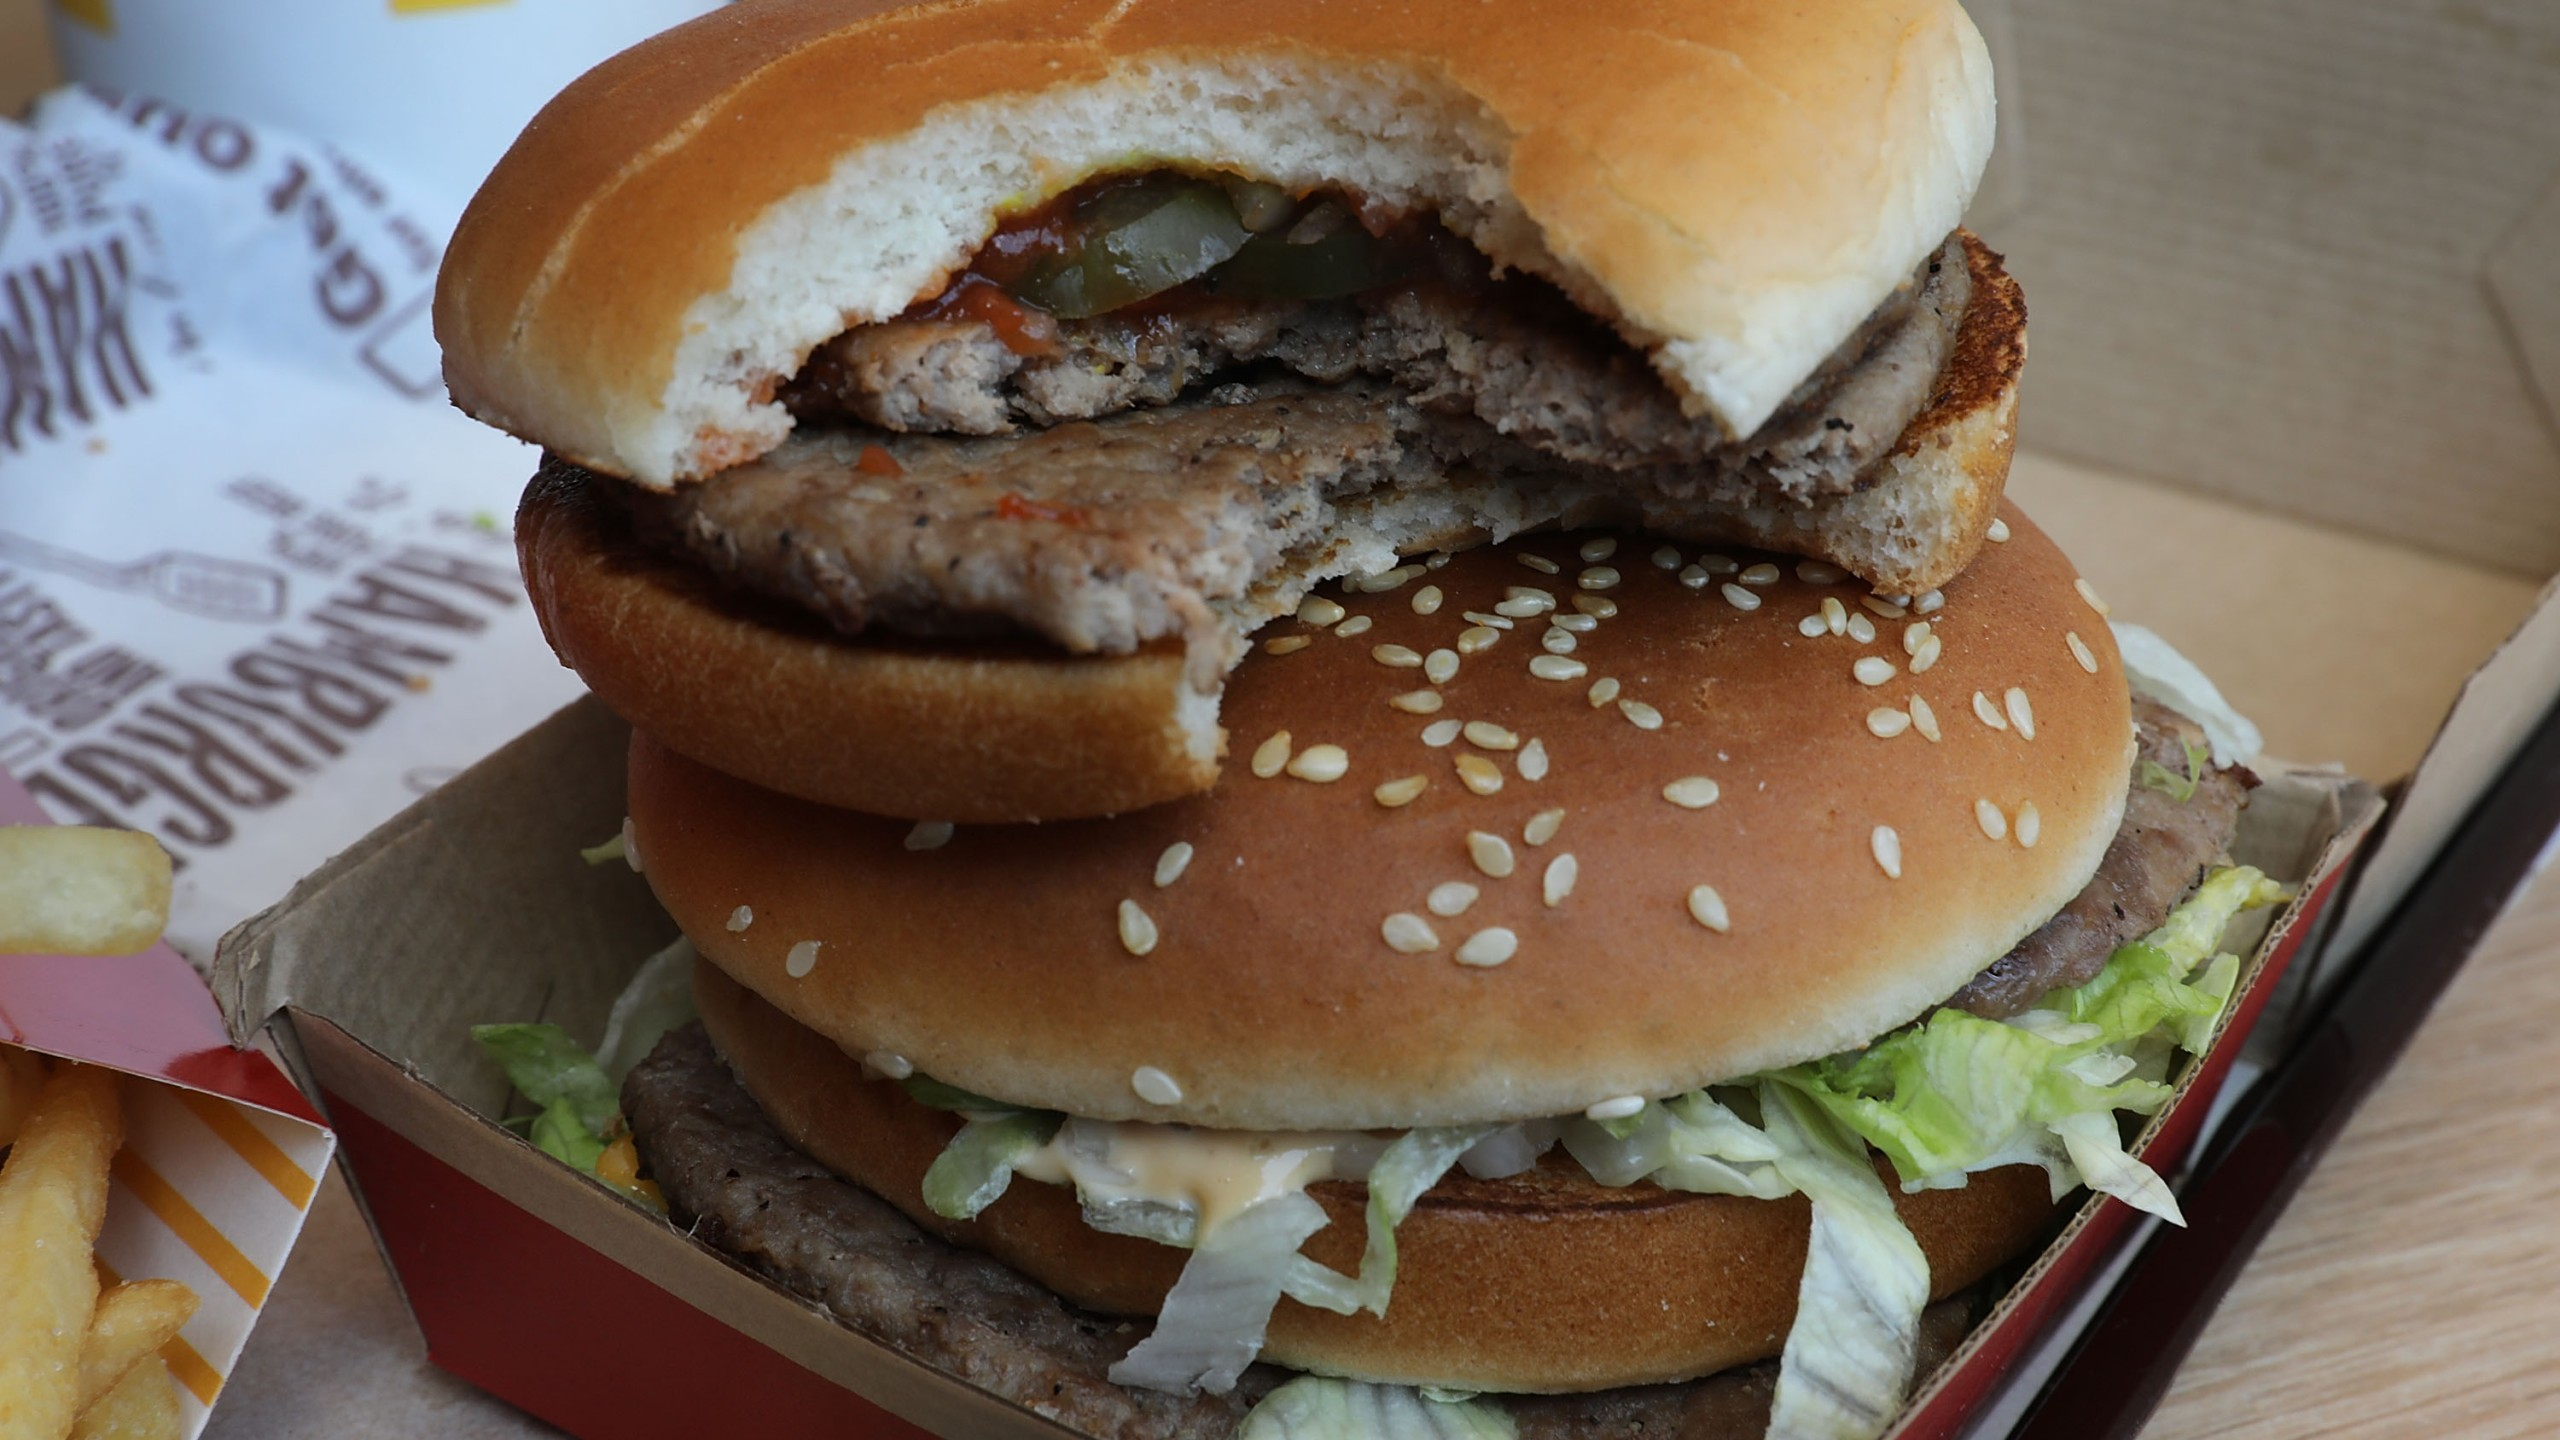 AMcDonald's Big Mac and double hamburger are seen on a tray in a file photo on April 30, 2018. (Credit: Joe Raedle/Getty Images)